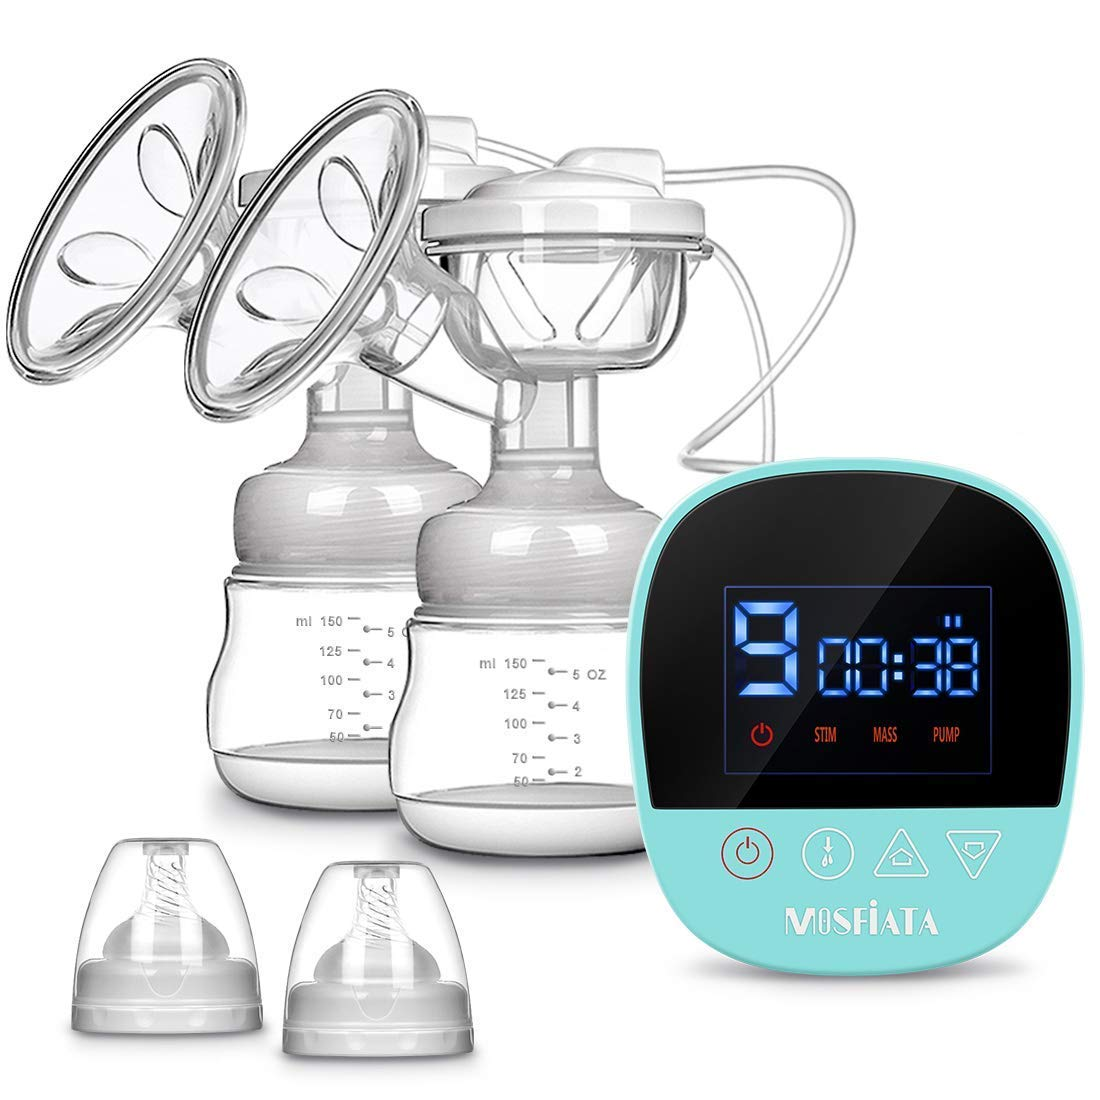 Electric Breast Pump, MOSFiATA Dual Suction Rechargeable Nursing Breastfeeding Pump with Touch Screen LED Display, 3 Modes (9 Levels Each Mode), BPA Free